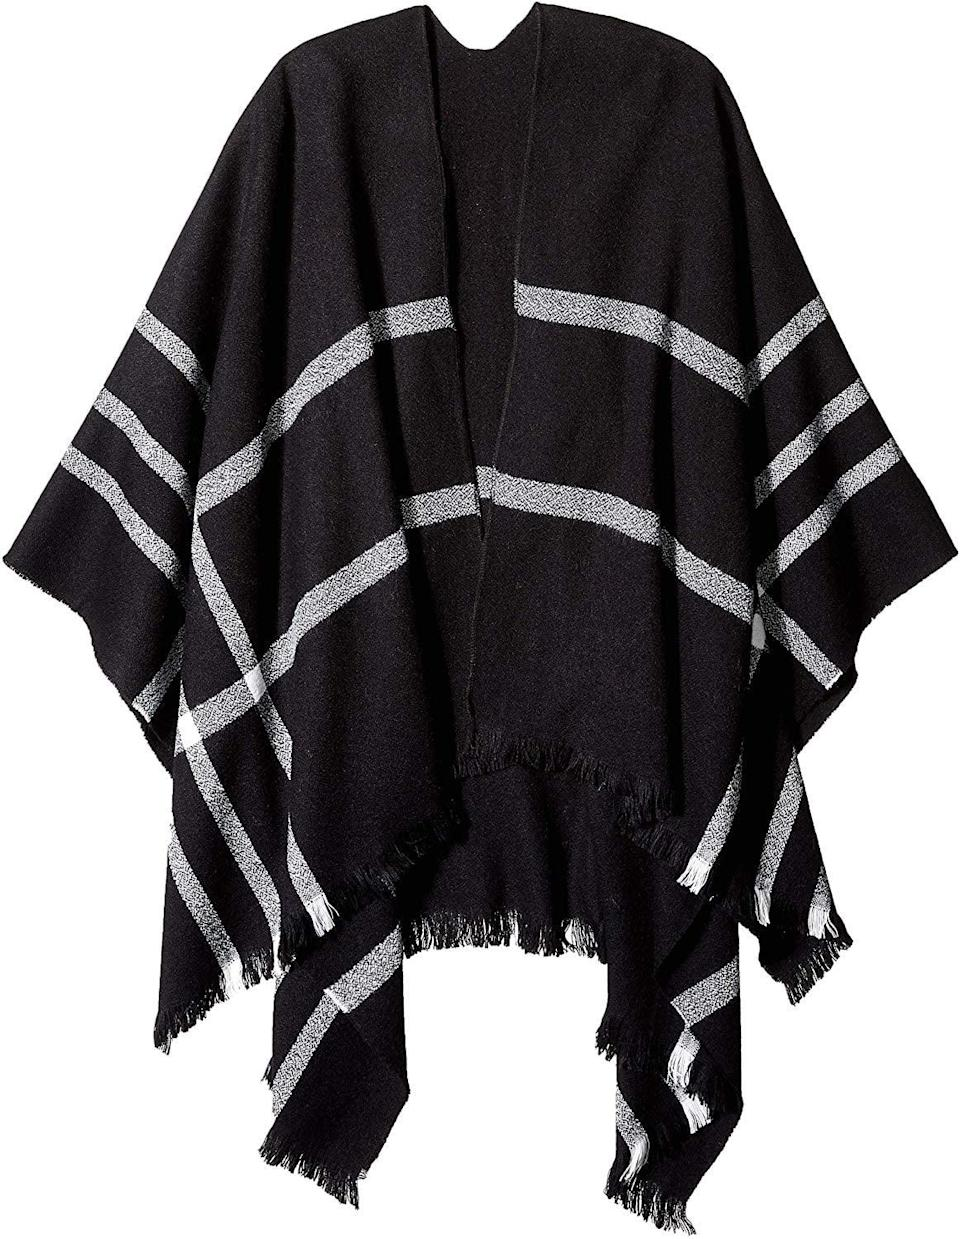 """<p>This <a href=""""https://www.popsugar.com/buy/Orchid-Row-Knit-Scarf-Poncho-505271?p_name=Orchid%20Row%20Knit%20Scarf%20Poncho&retailer=amazon.com&pid=505271&price=26&evar1=fab%3Auk&evar9=46947746&evar98=https%3A%2F%2Fwww.popsugar.com%2Ffashion%2Fphoto-gallery%2F46947746%2Fimage%2F46949404%2FOrchid-Row-Knit-Scarf-Poncho&list1=shopping%2Camazon%2Choliday%2Choliday%20fashion%2Cfashion%20shopping&prop13=api&pdata=1"""" rel=""""nofollow noopener"""" class=""""link rapid-noclick-resp"""" target=""""_blank"""" data-ylk=""""slk:Orchid Row Knit Scarf Poncho"""">Orchid Row Knit Scarf Poncho</a> ($26) looks great over a long-sleeved shirt.</p>"""